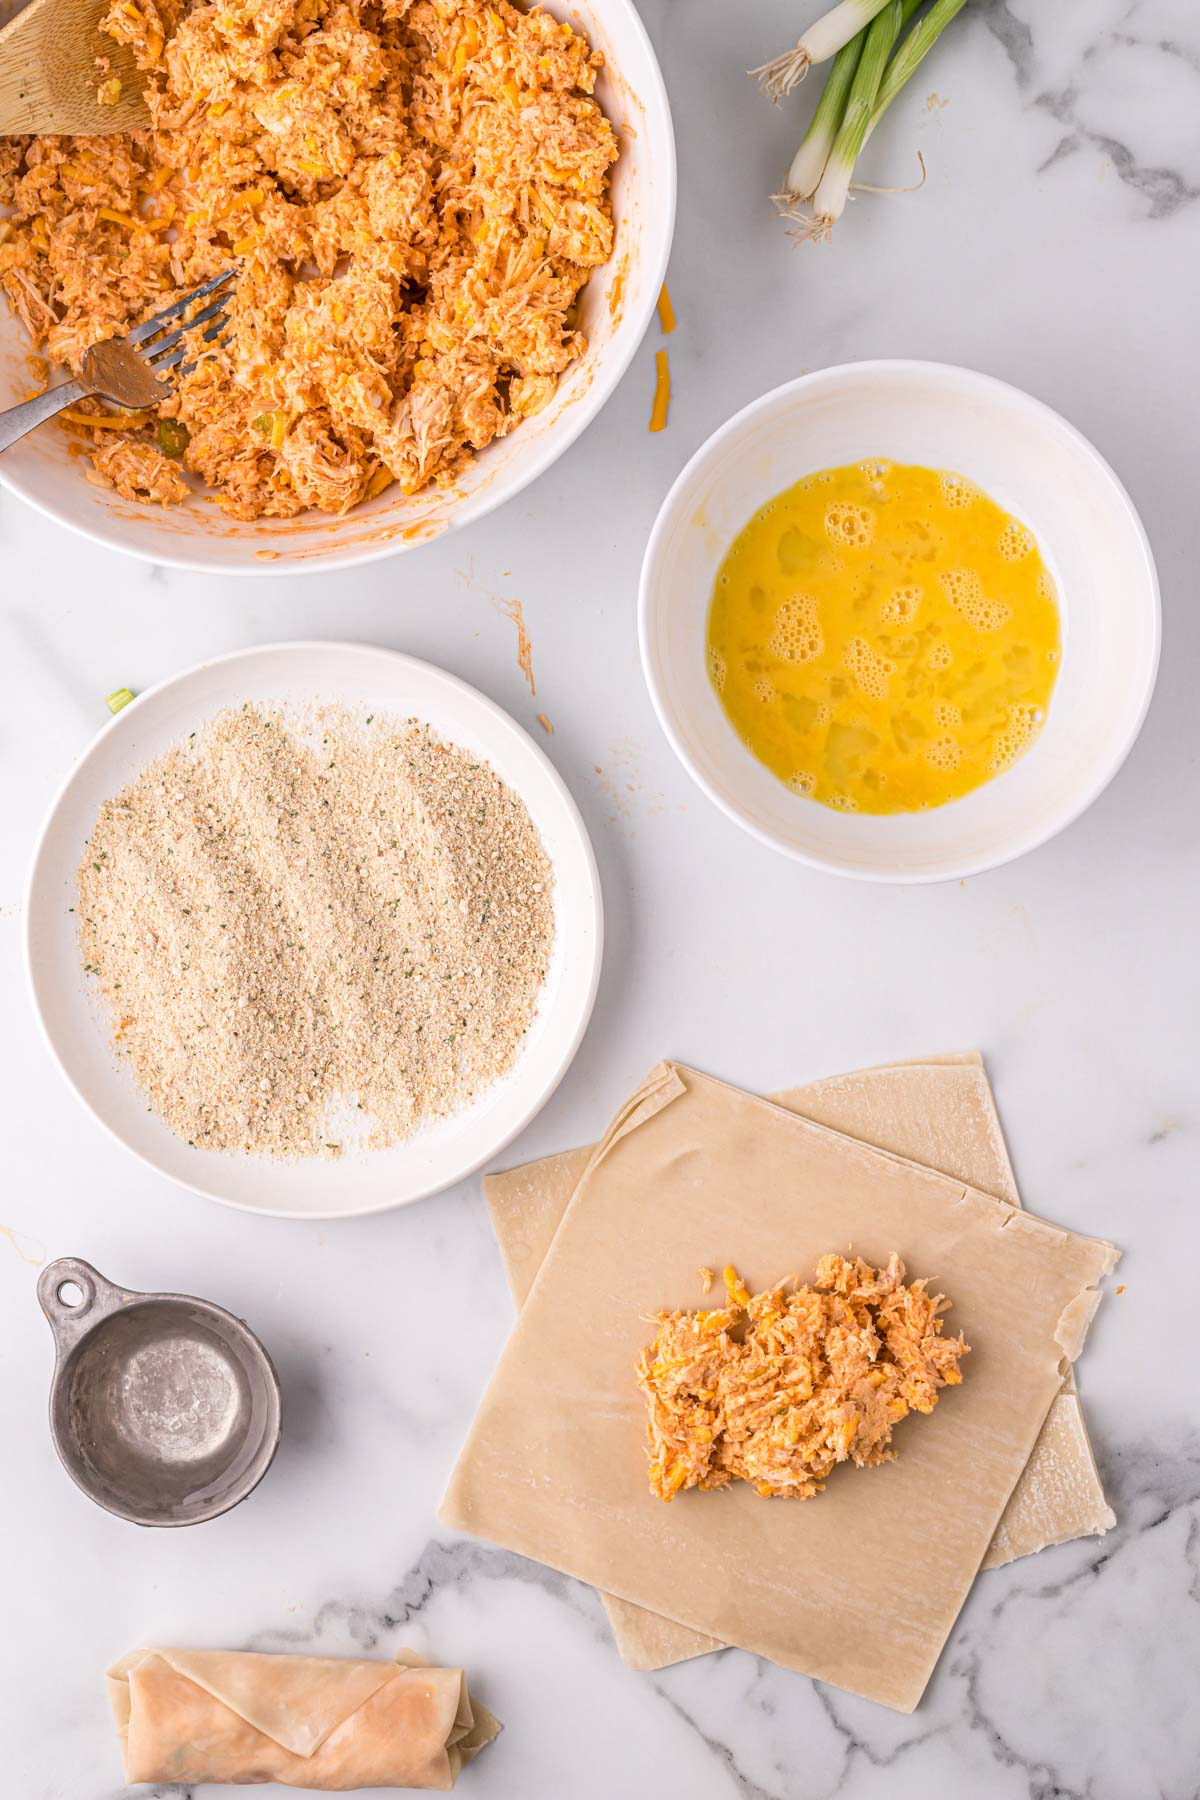 buffalo chicken, dishes of breadcrumbs, egg and egg roll wrappes